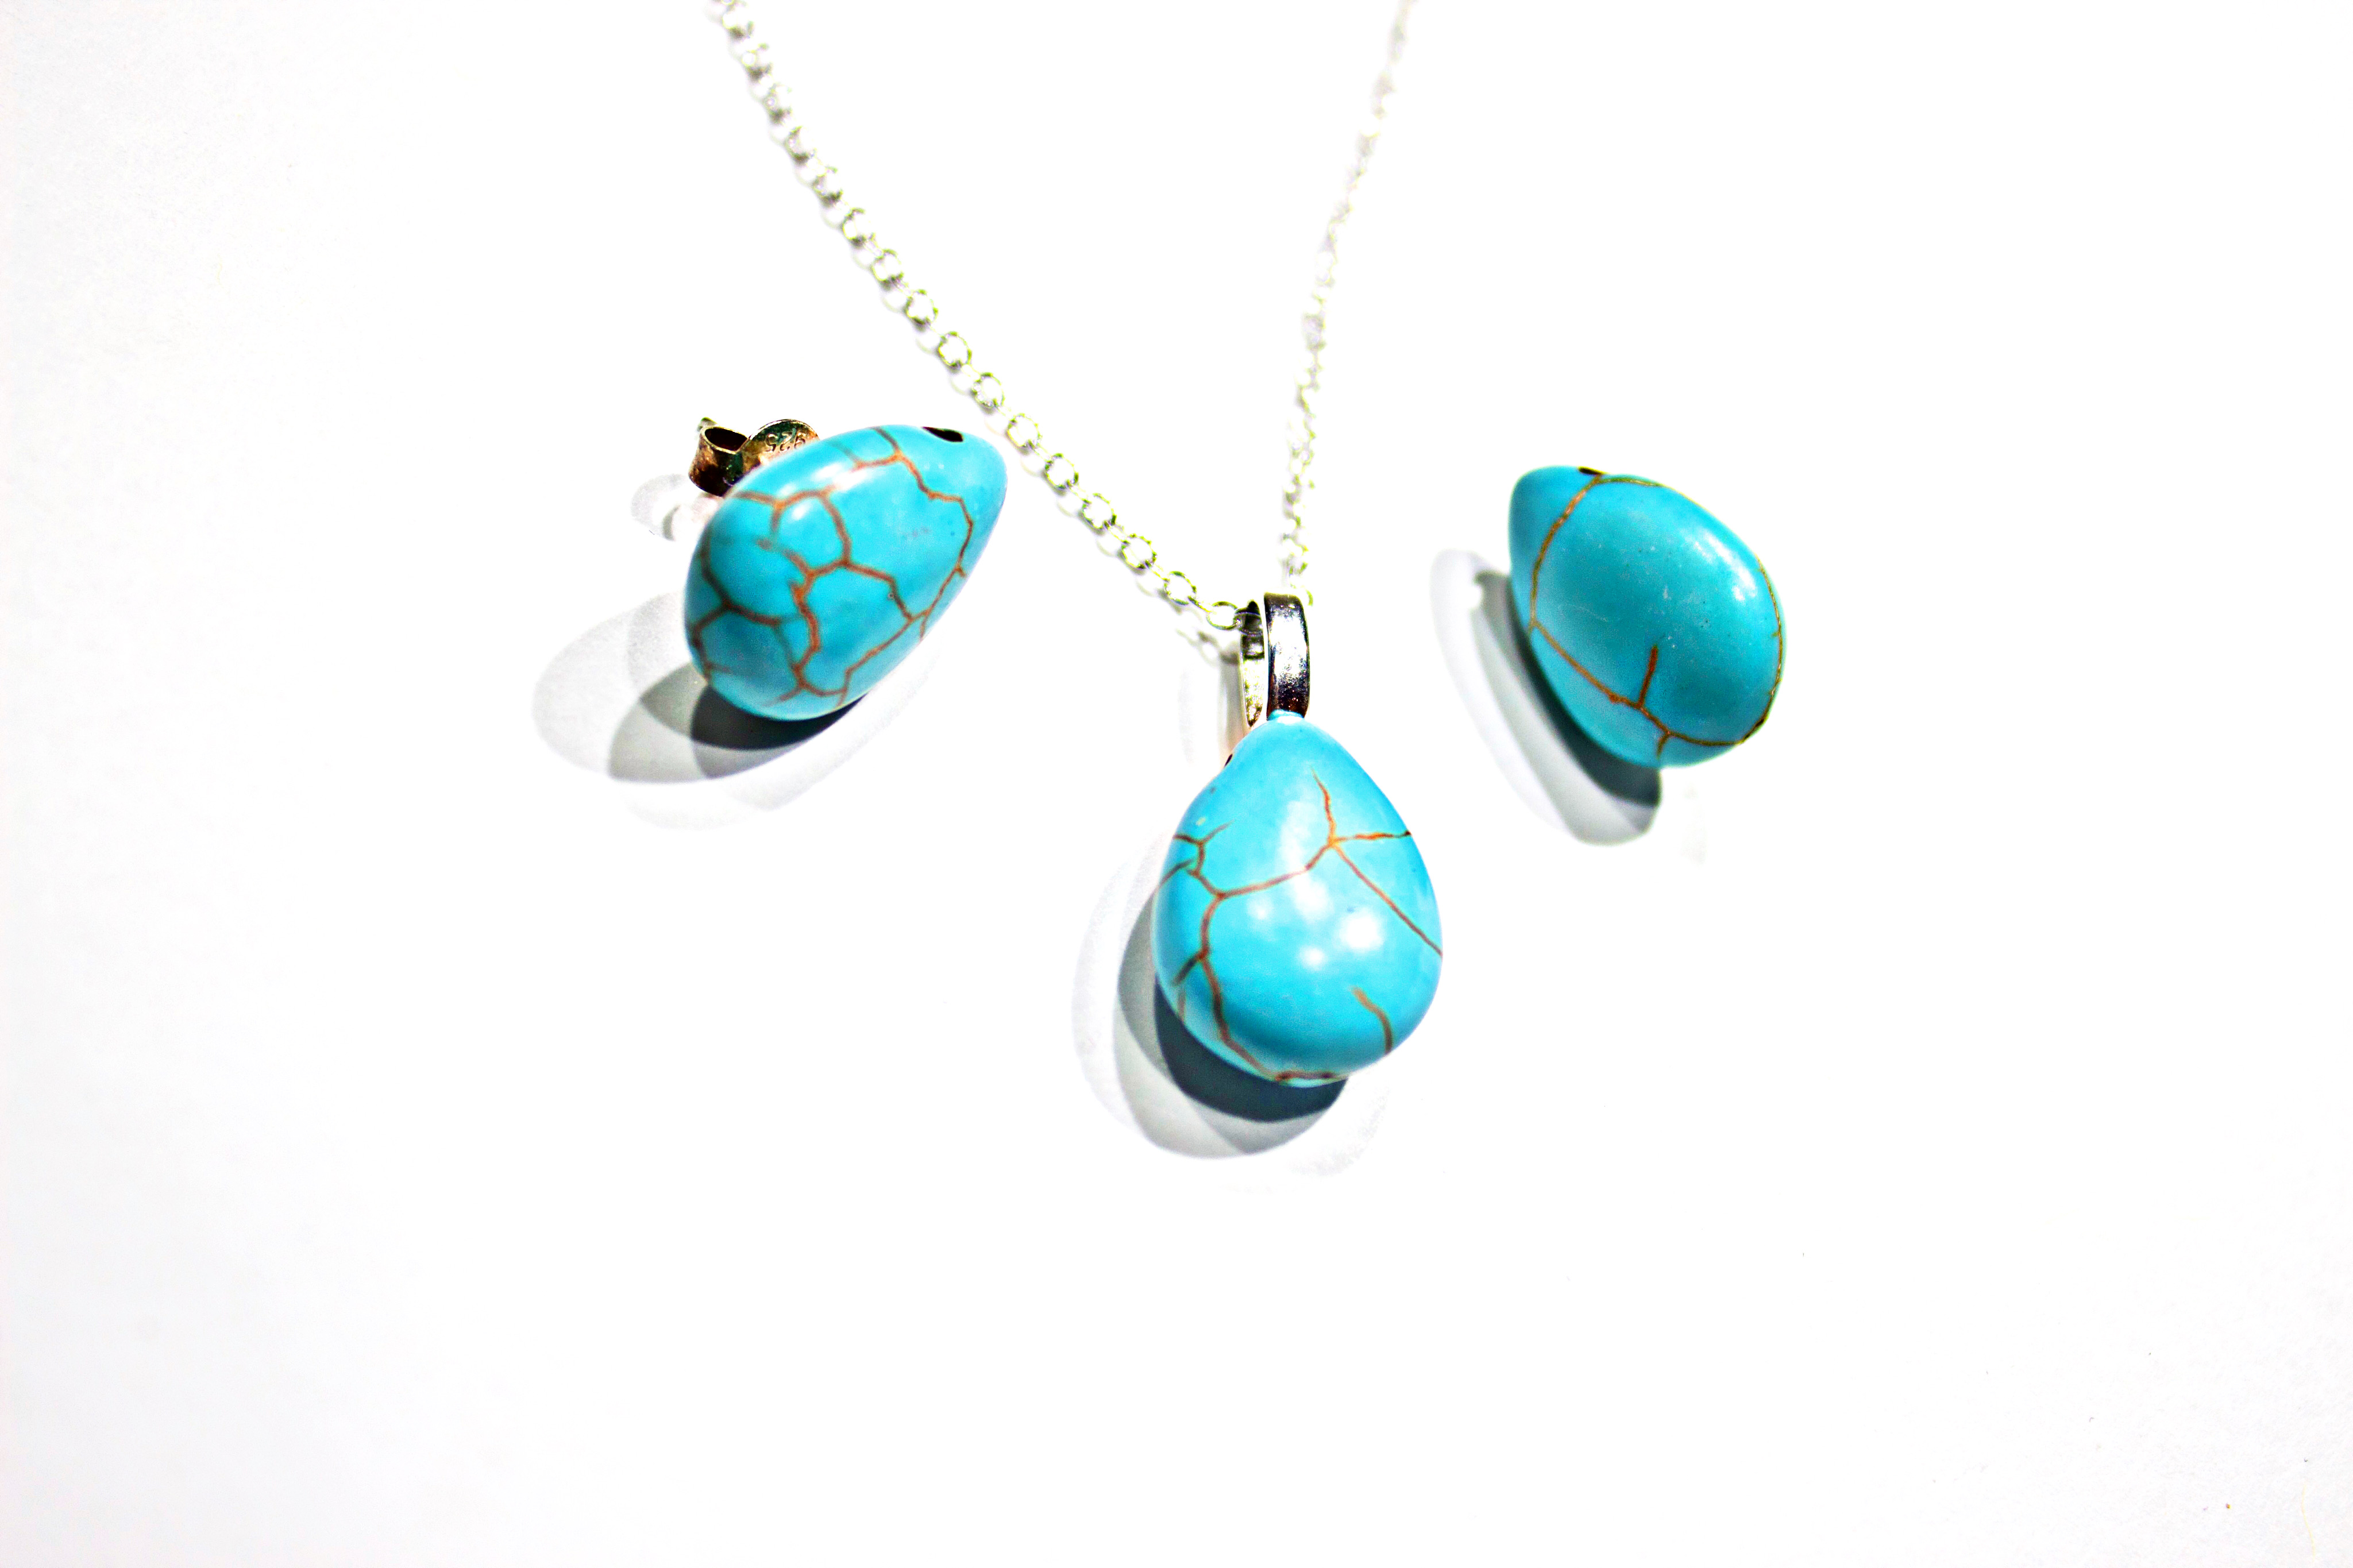 Turquoise 925 sterling sliver earring and pendant set